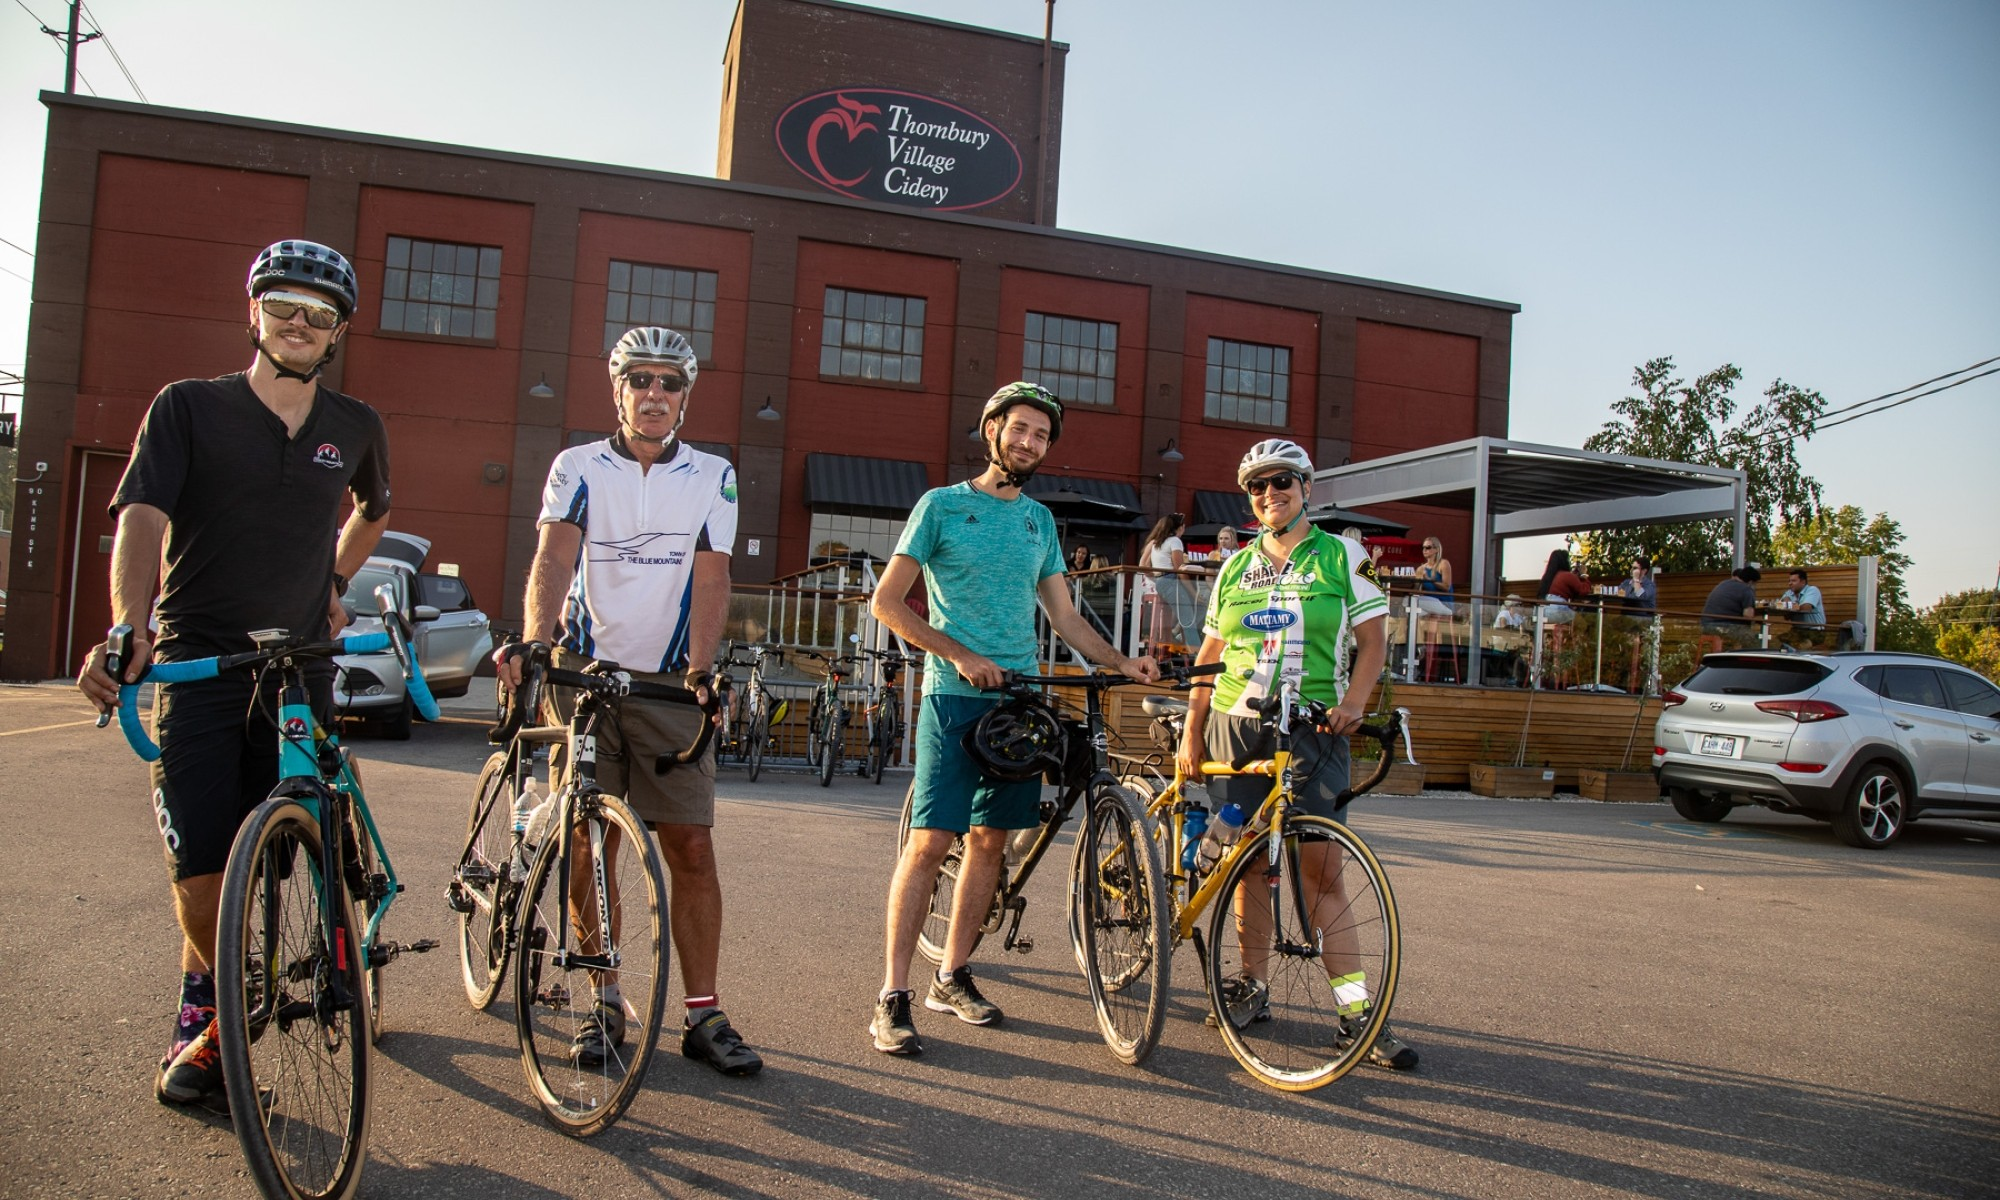 Four cyclists standing in front of Thornbury Cider House